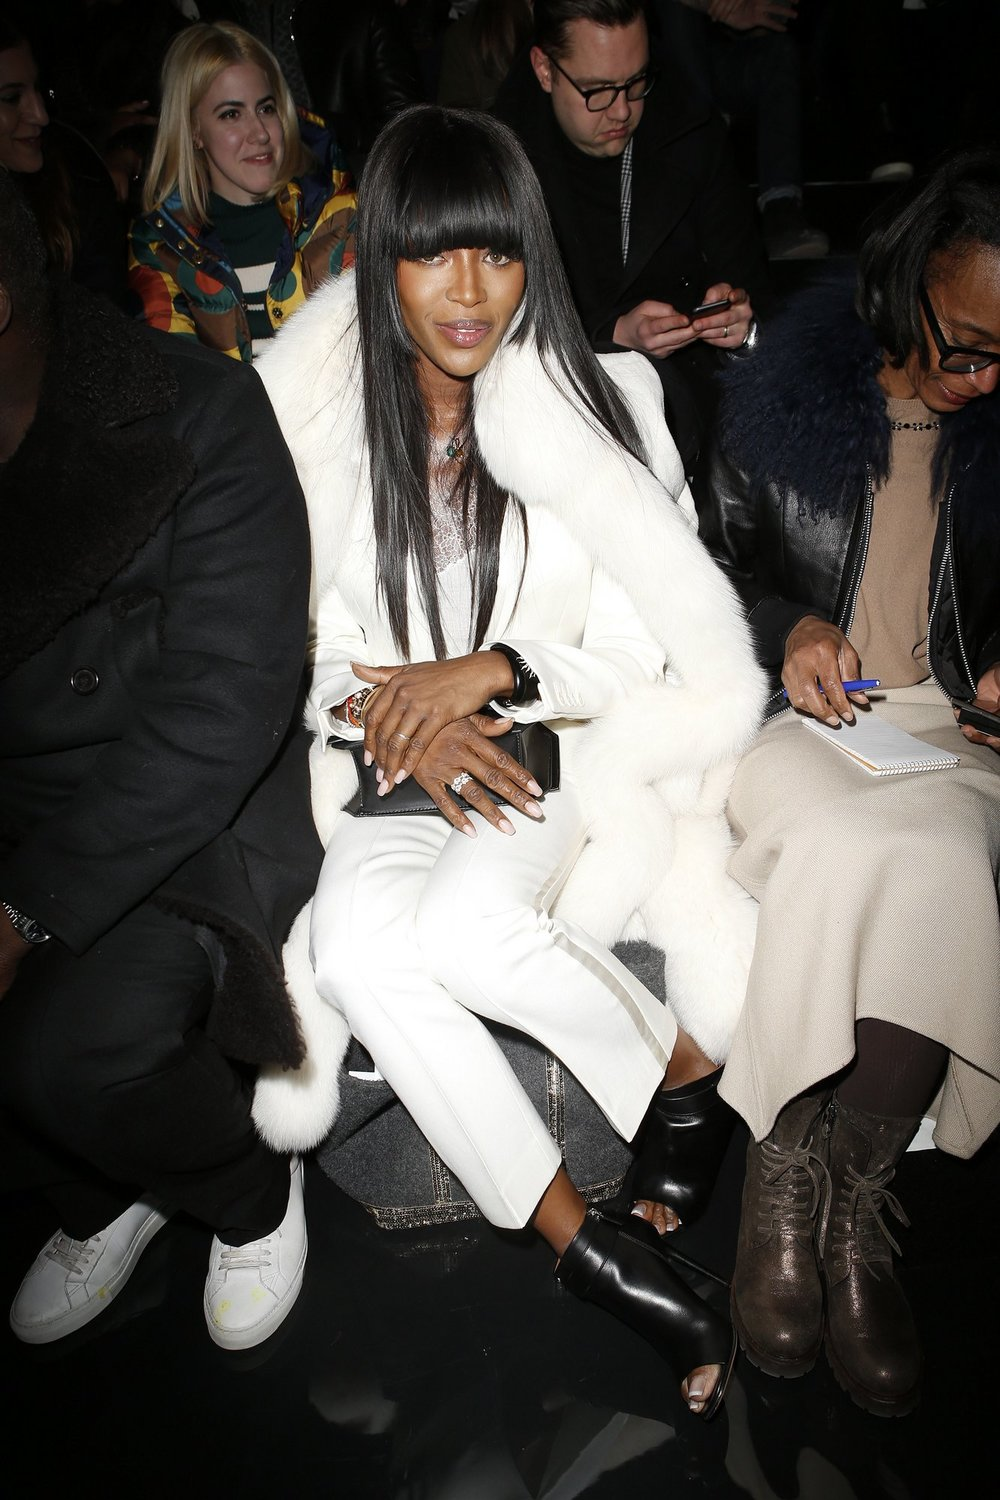 Naomi Campbell at Fenty x Puma